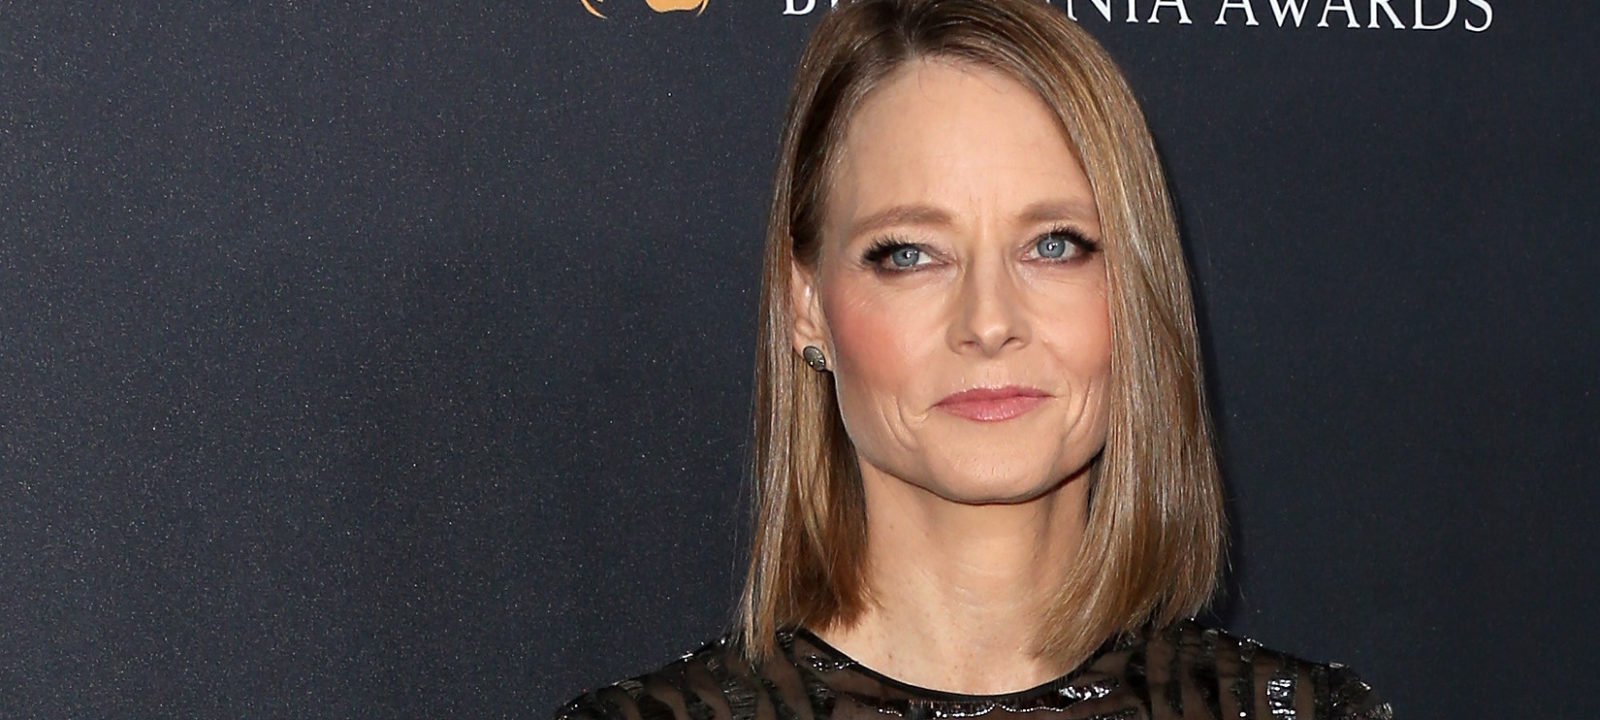 Honoree Jodie Foster attends the 2016 AMD British Academy Britannia Awards presented by Jaguar Land Rover and American Airlines at The Beverly Hilton Hotel on October 28, 2016 in Beverly Hills, California.